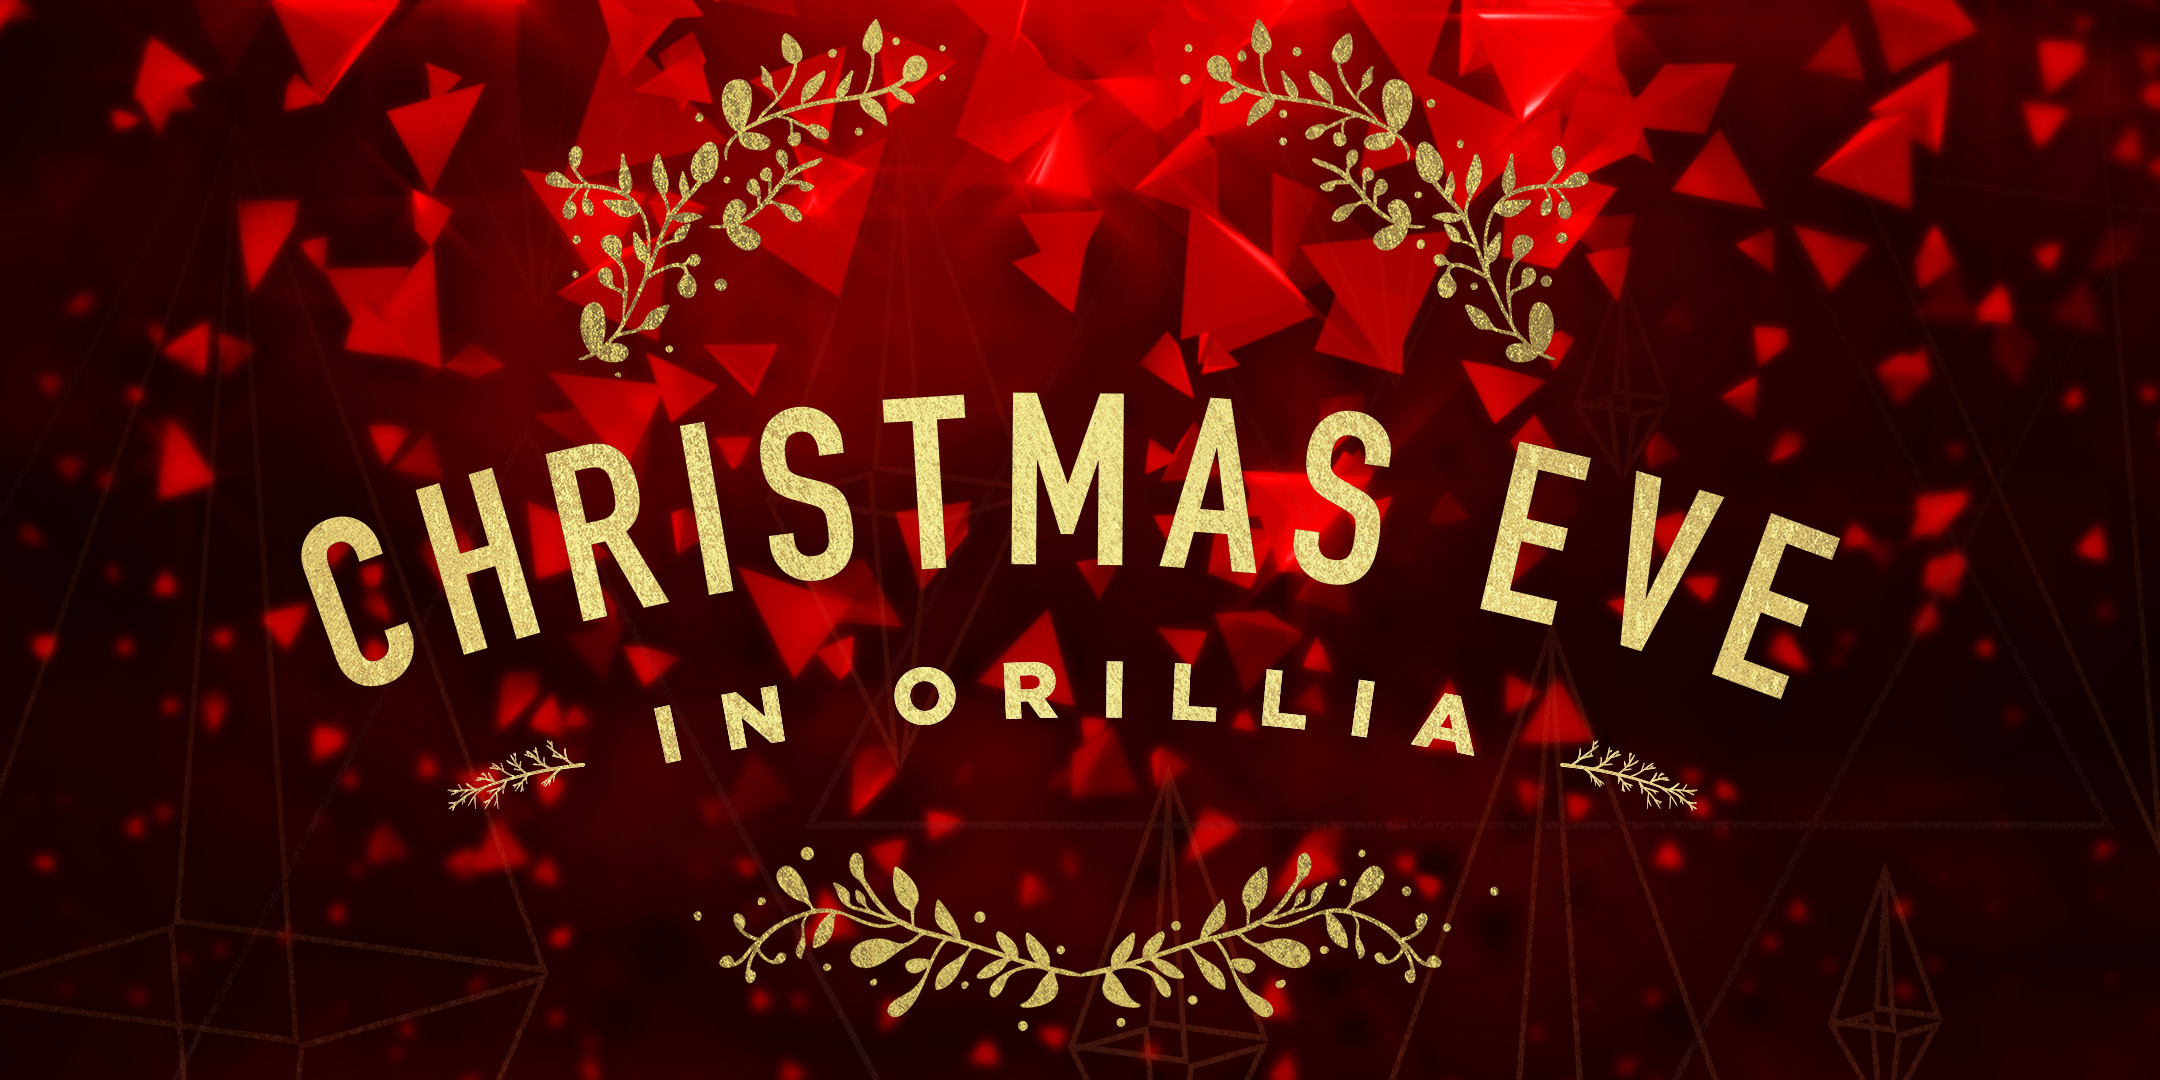 Christmas Eve In Orillia Graphic